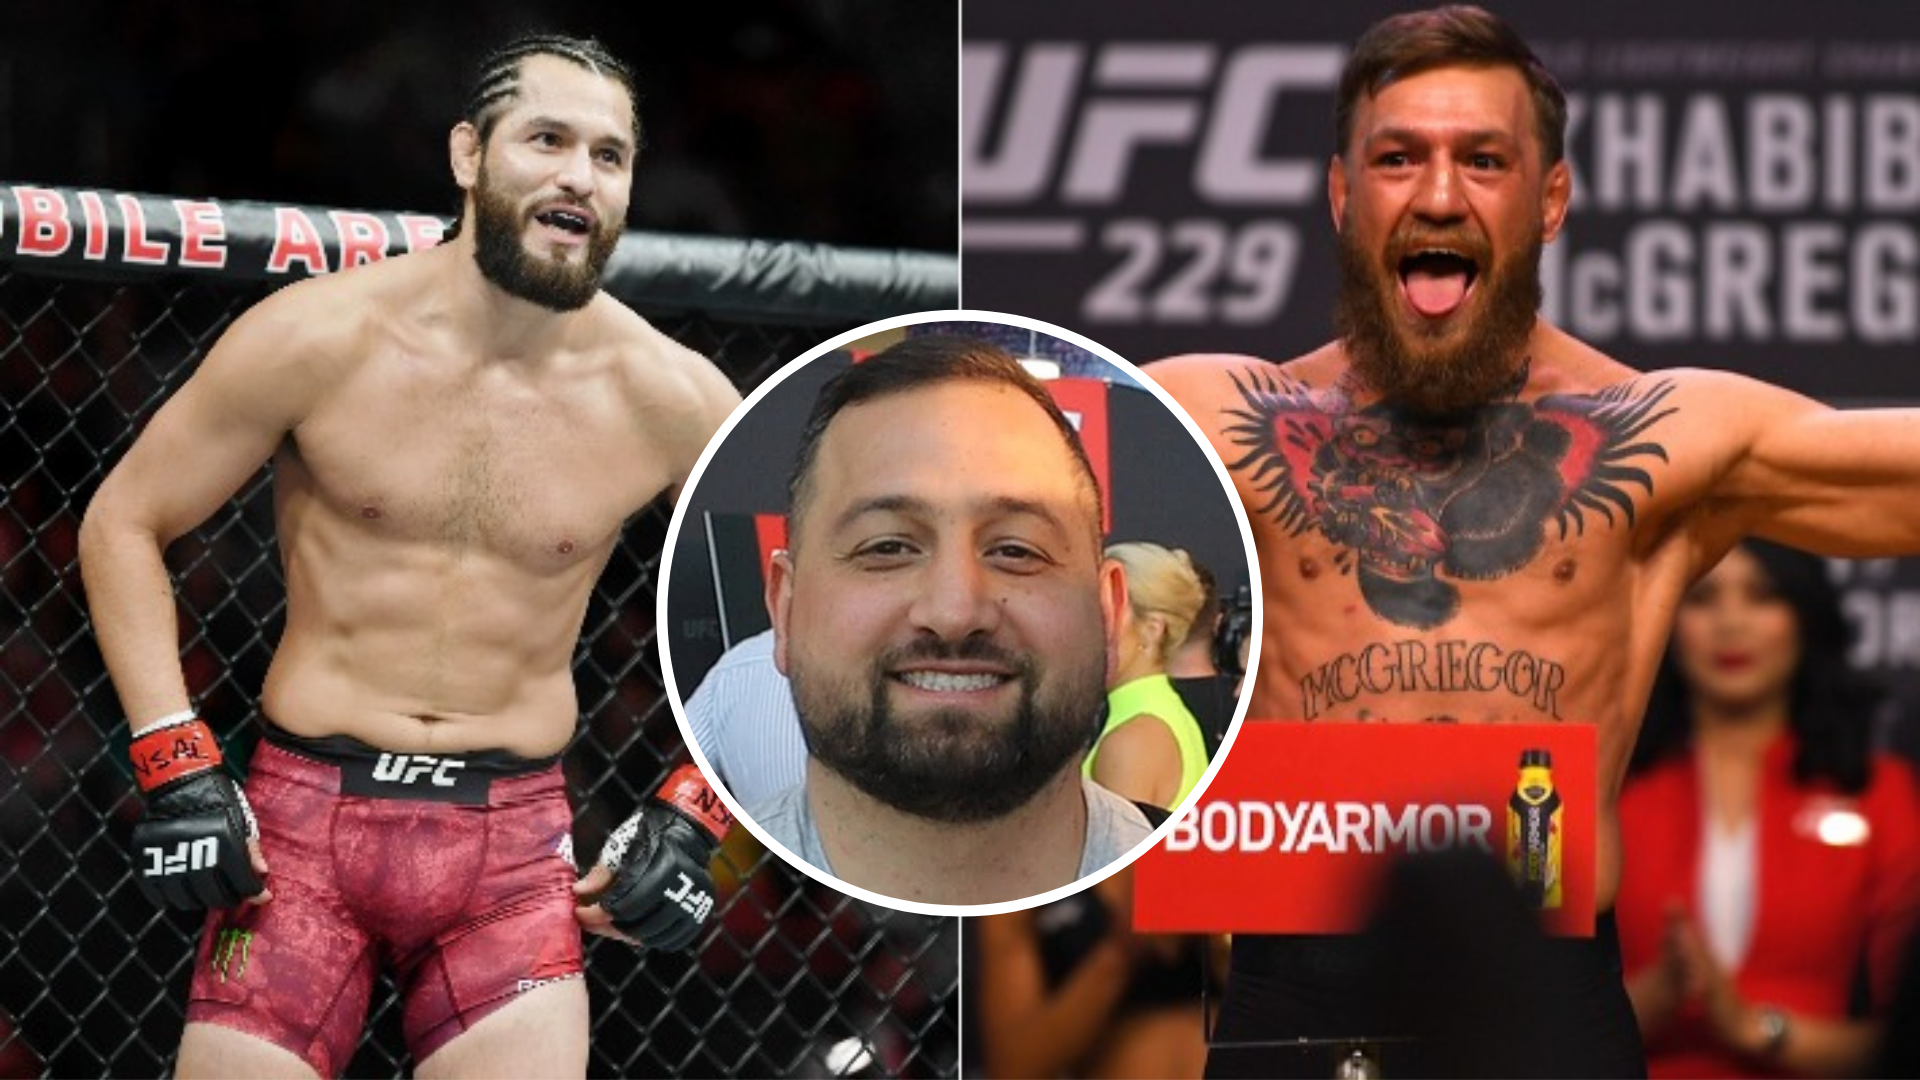 Jorge Masvidal's manager: If Conor McGregor wins at UFC 246, he may be next! - McGregor